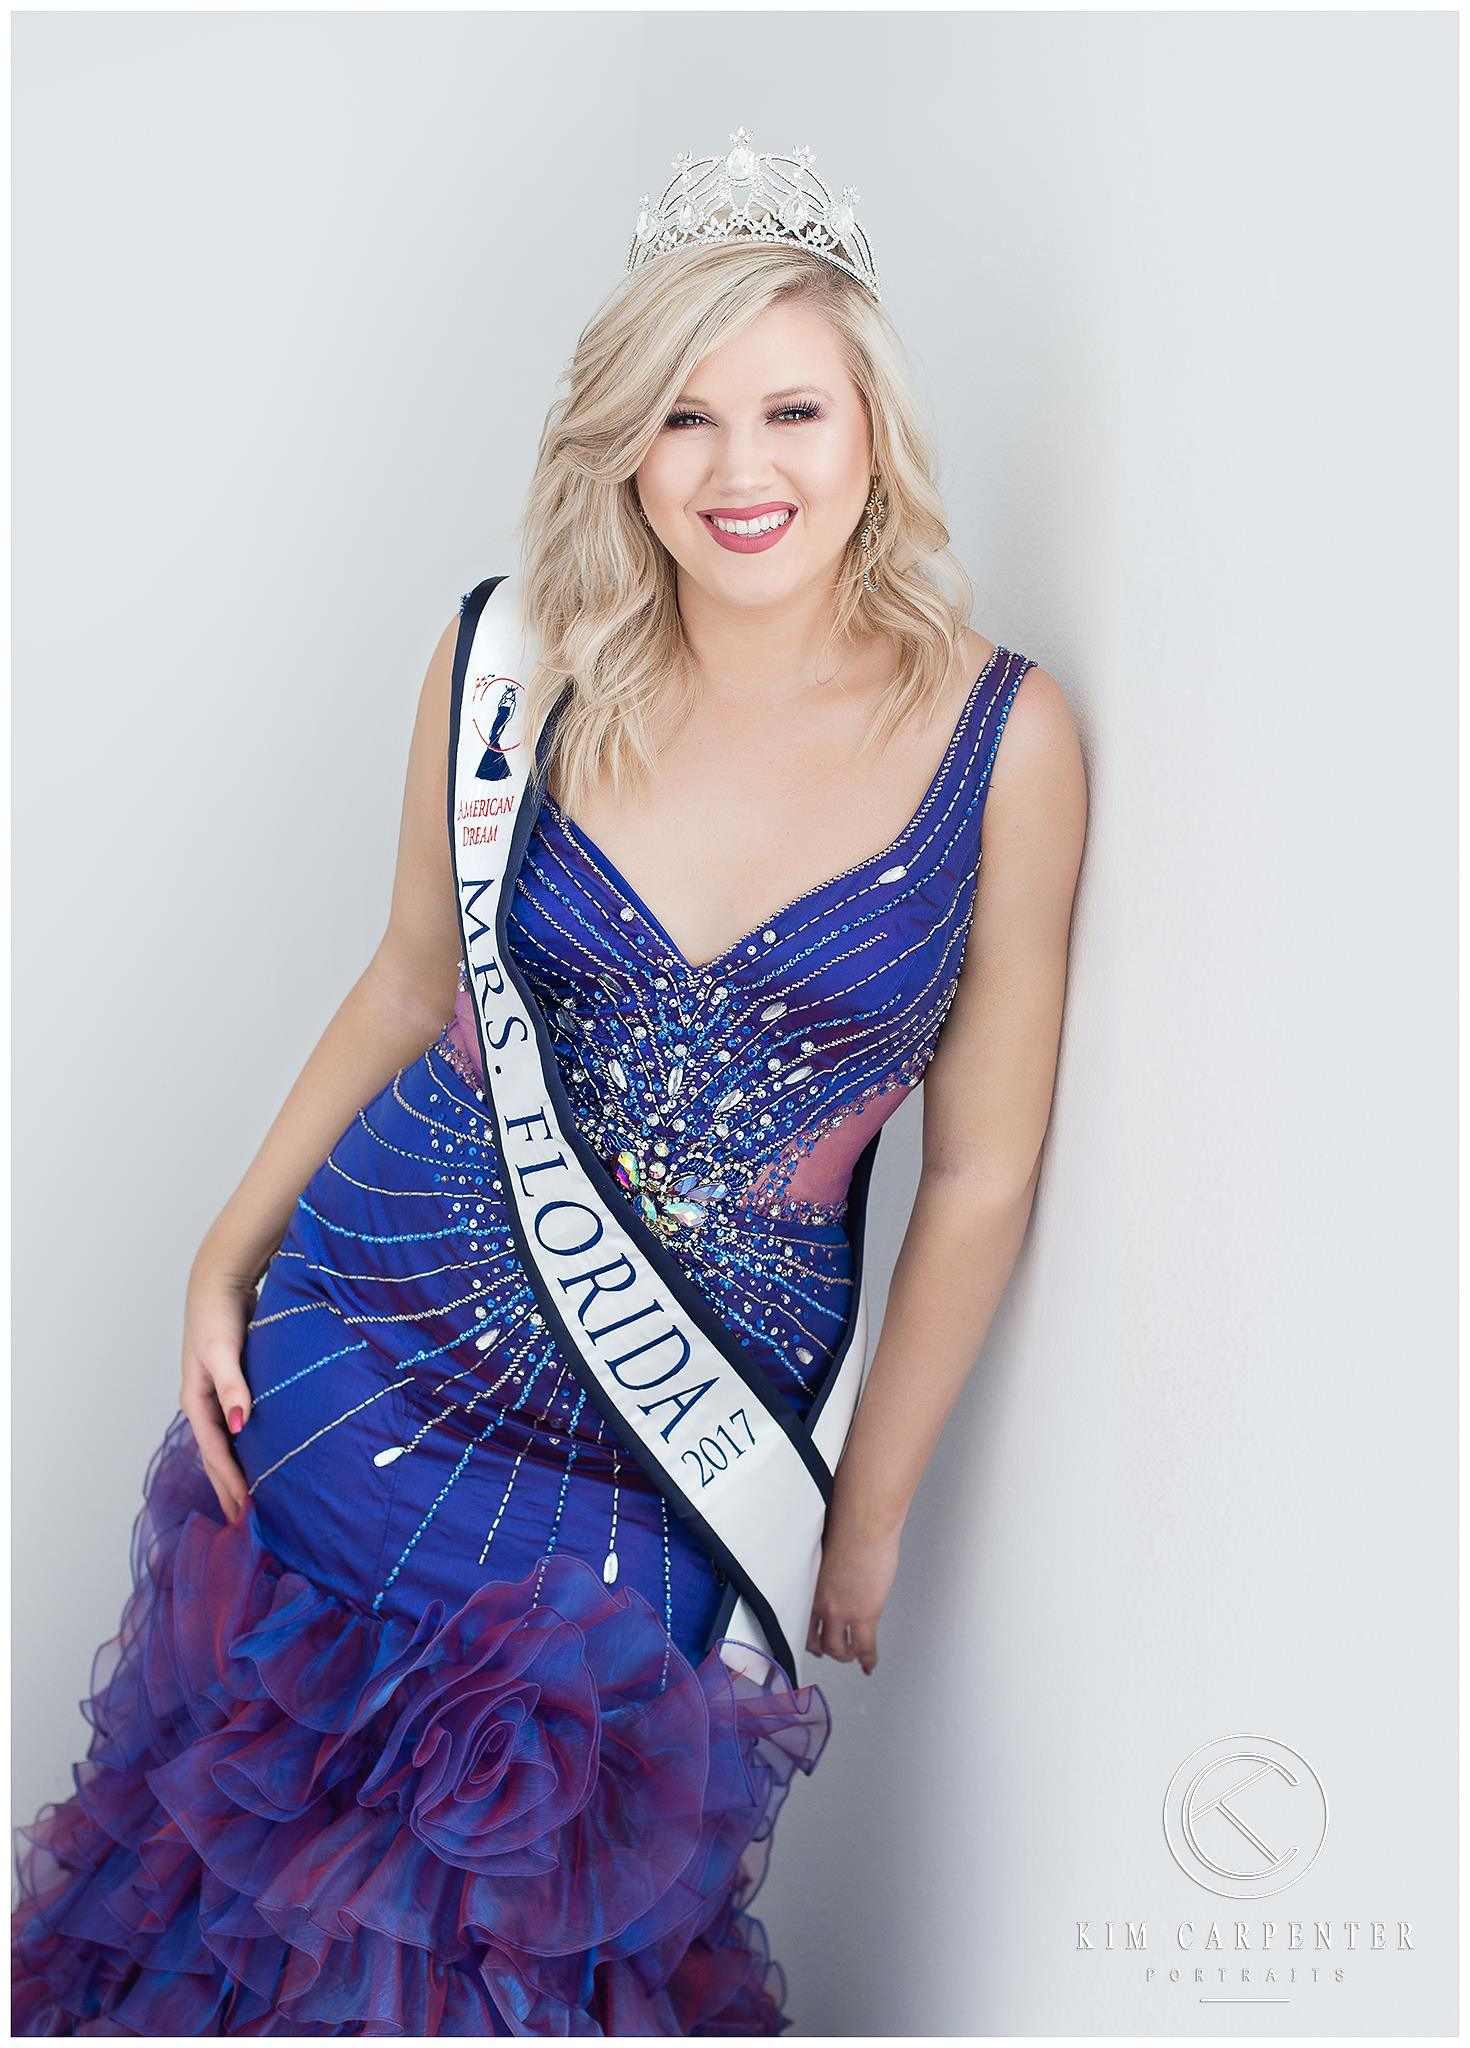 Woman wearing blue dress and sash that says Mrs. Florida.